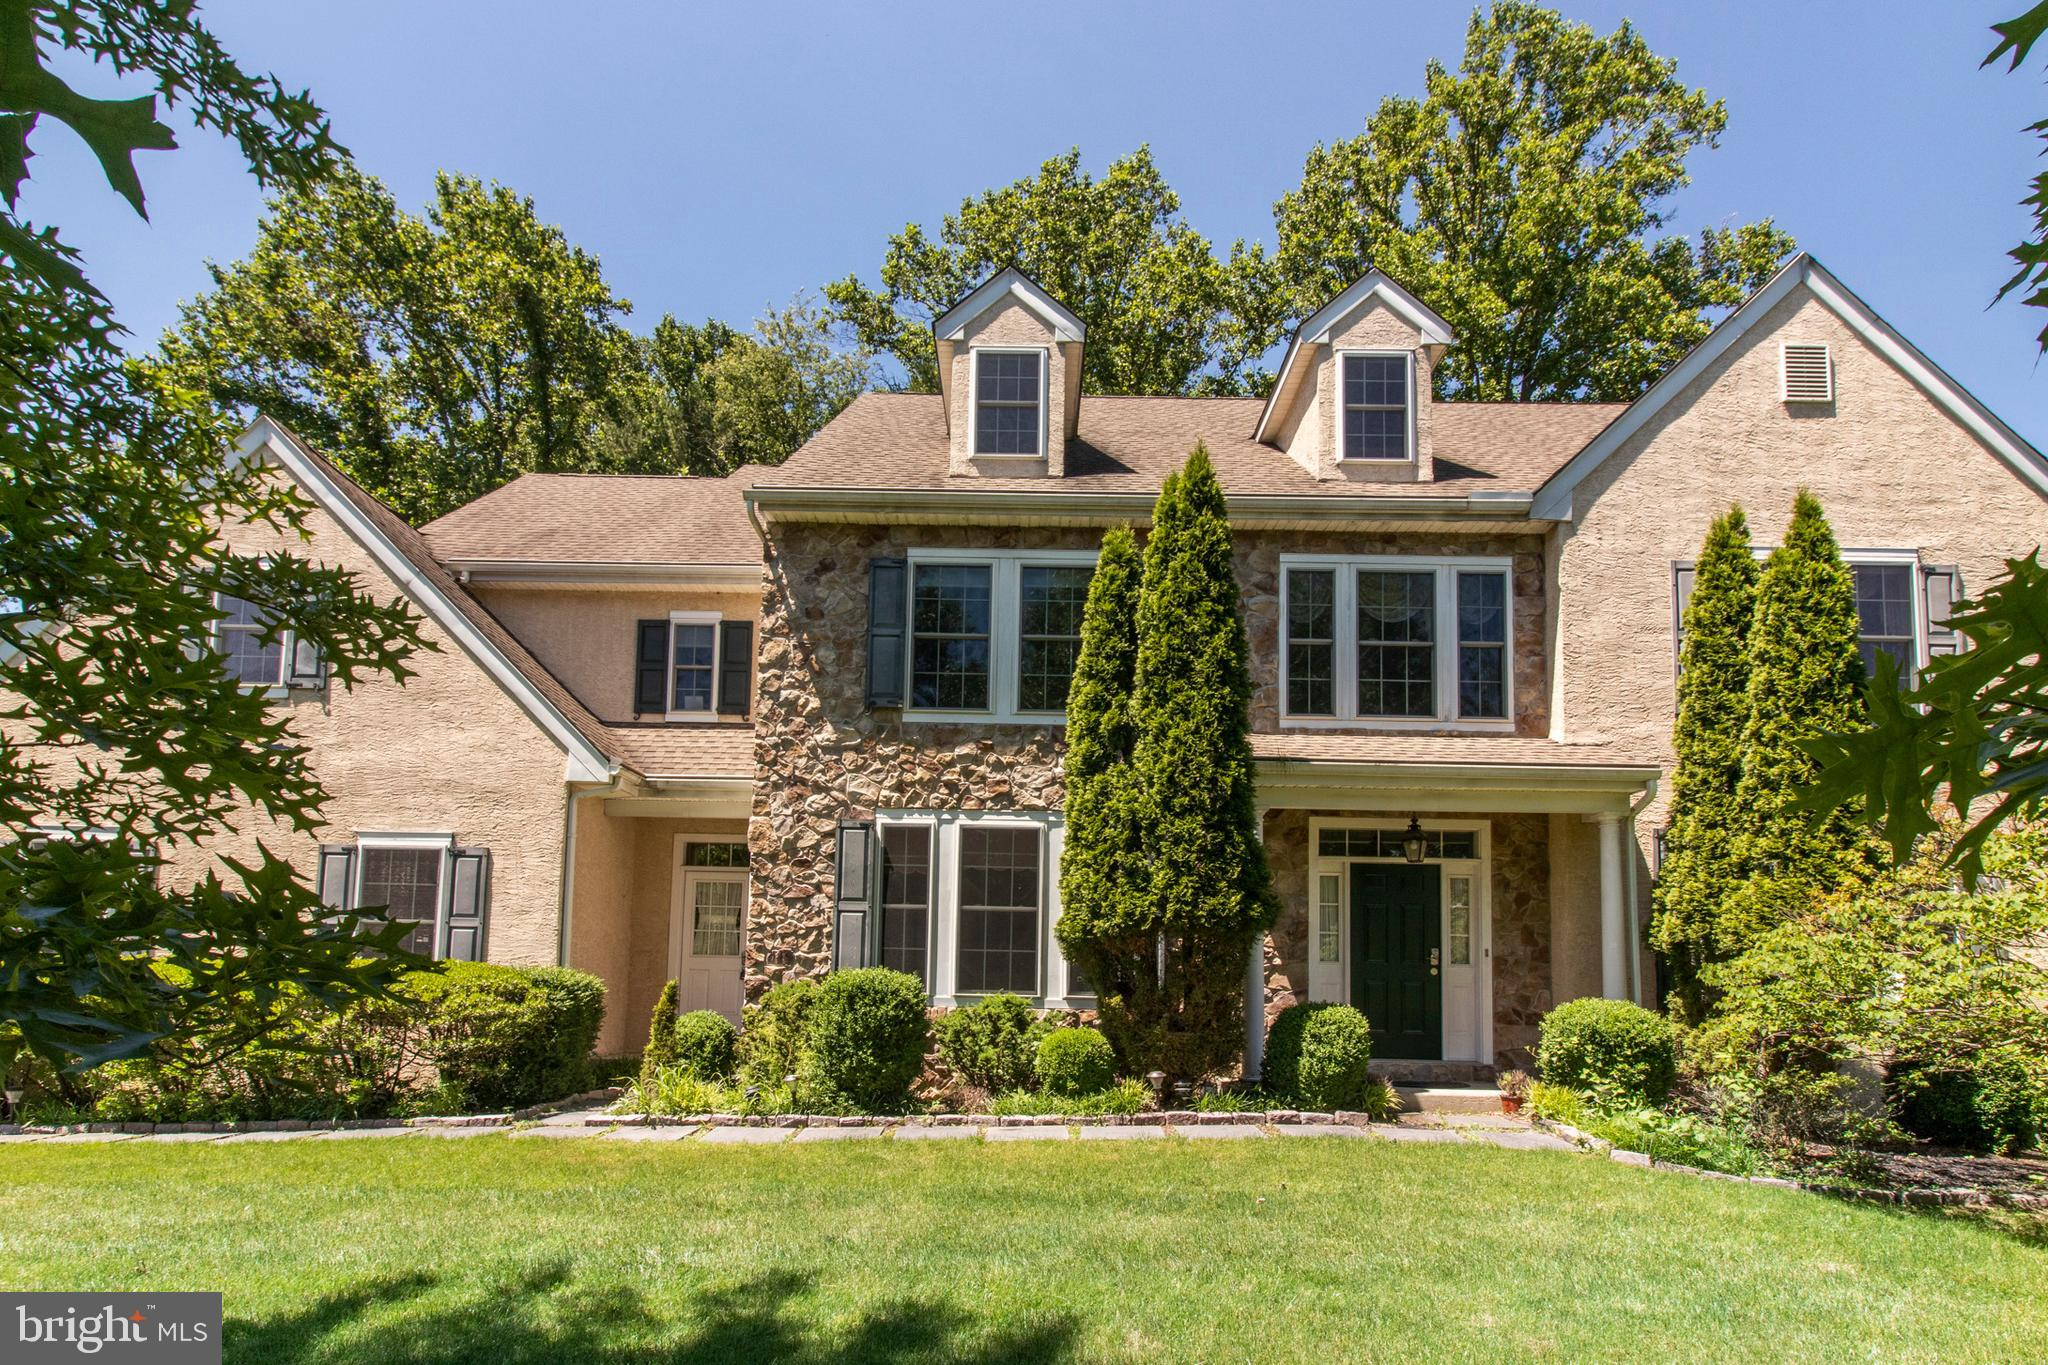 20 KIMBERLY WAY, BROOMALL, PA 19008